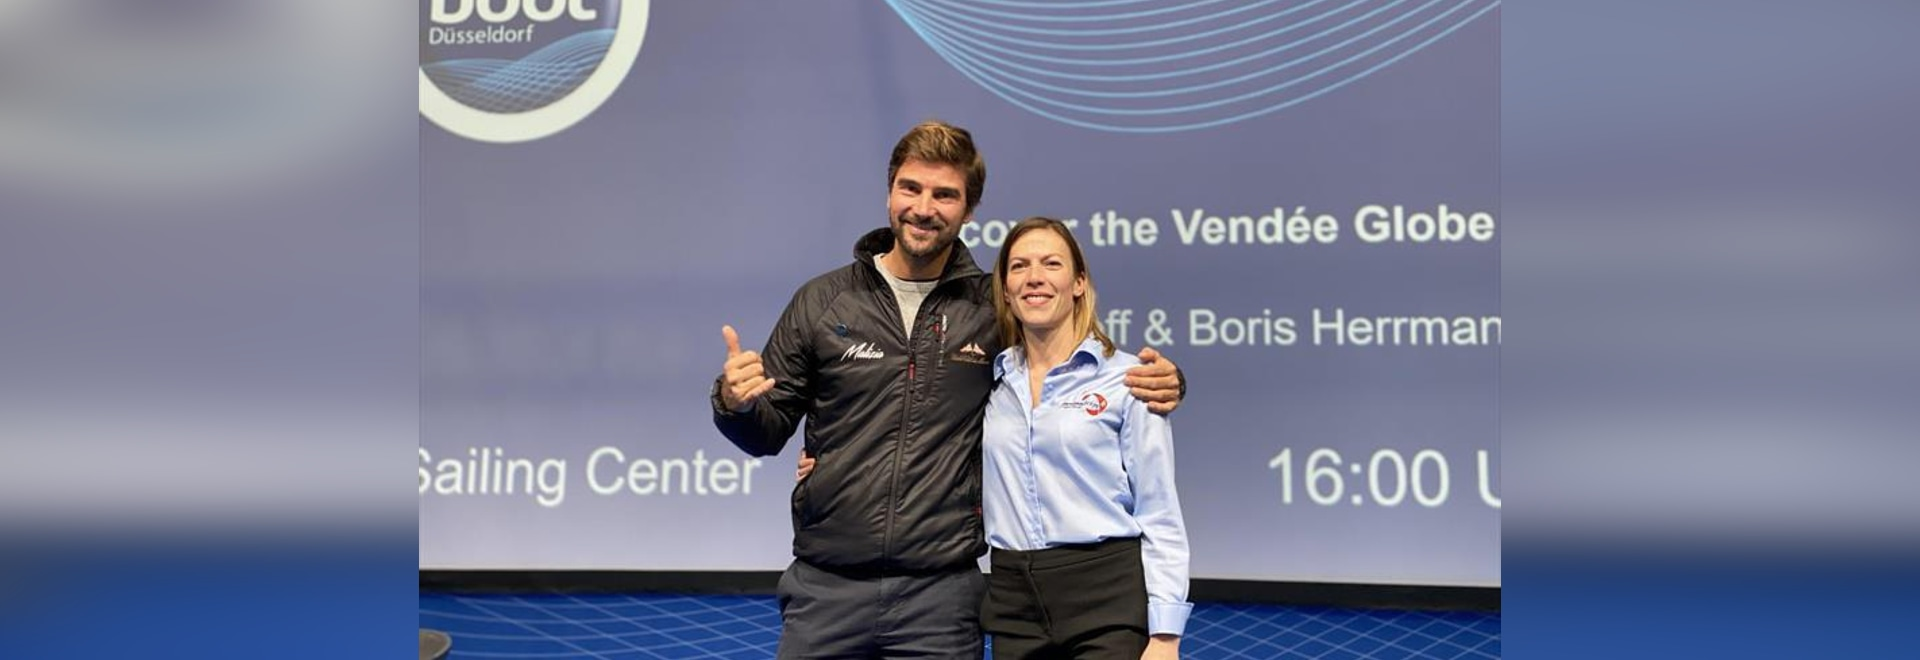 Boris Herrmann and Vendée Globe organization work together at the Dusseldorf Boot Boat Show